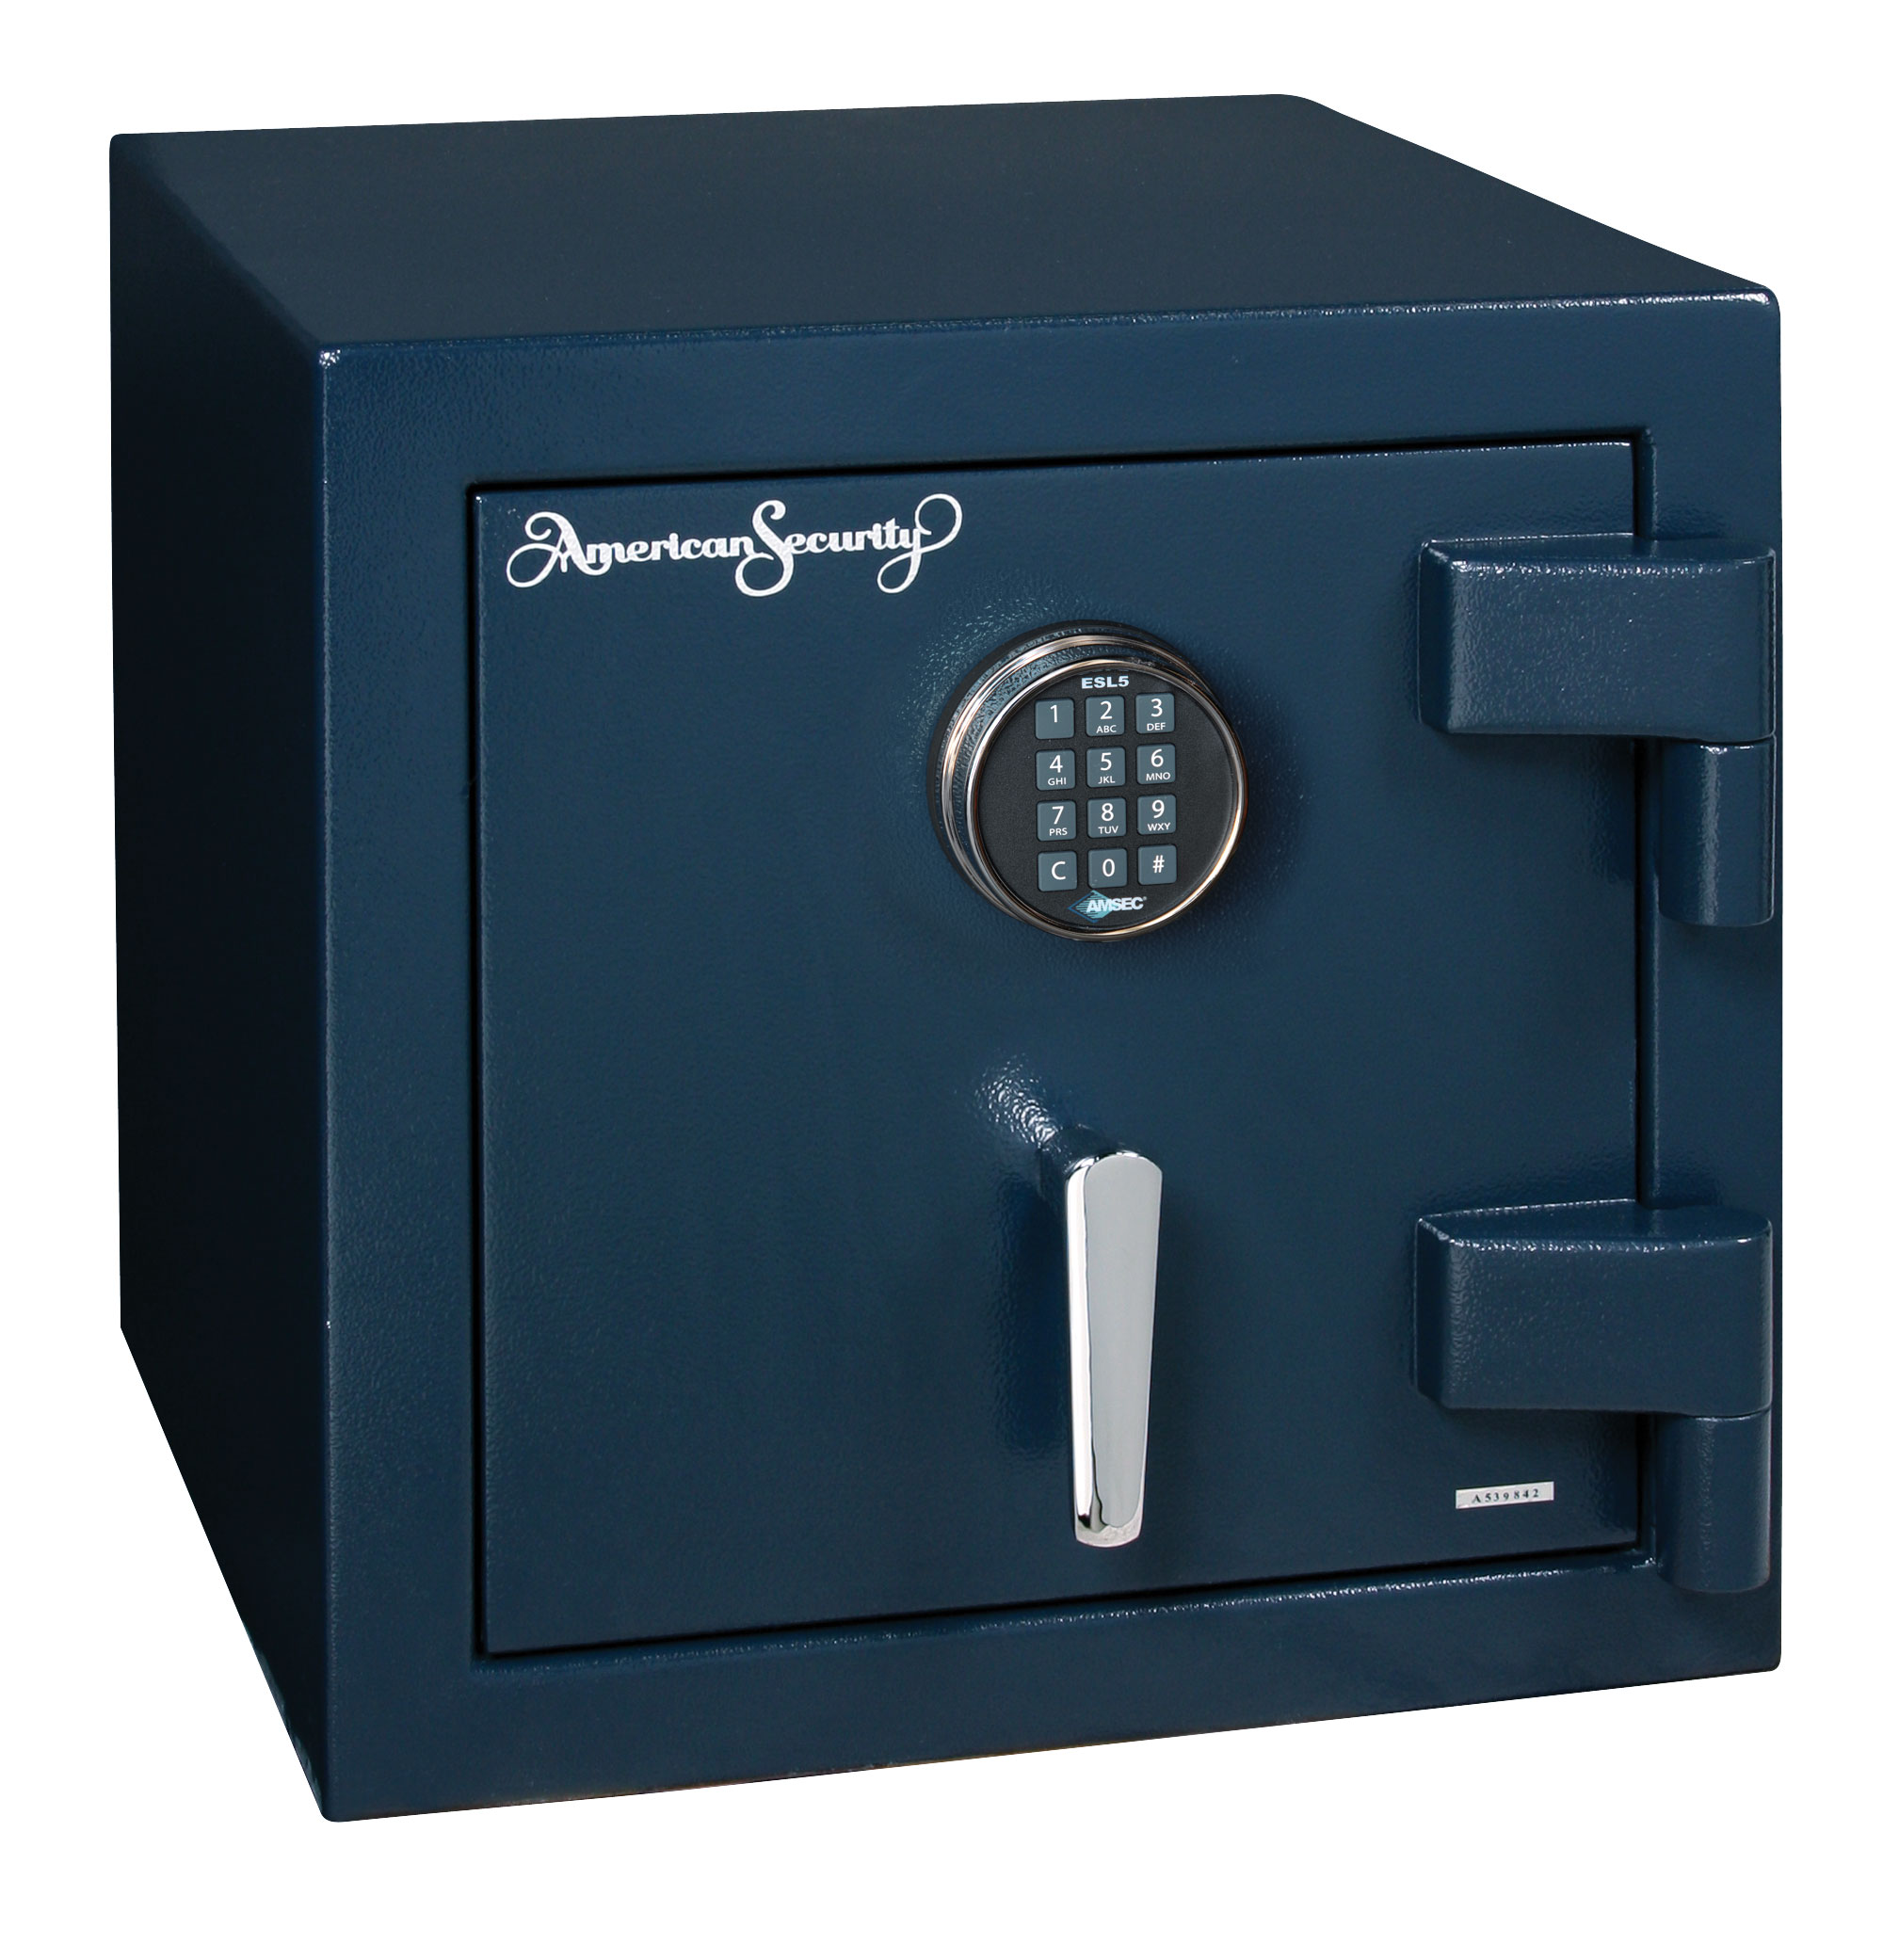 American security am2020e5 safe fire resistant home for Safe and secure products